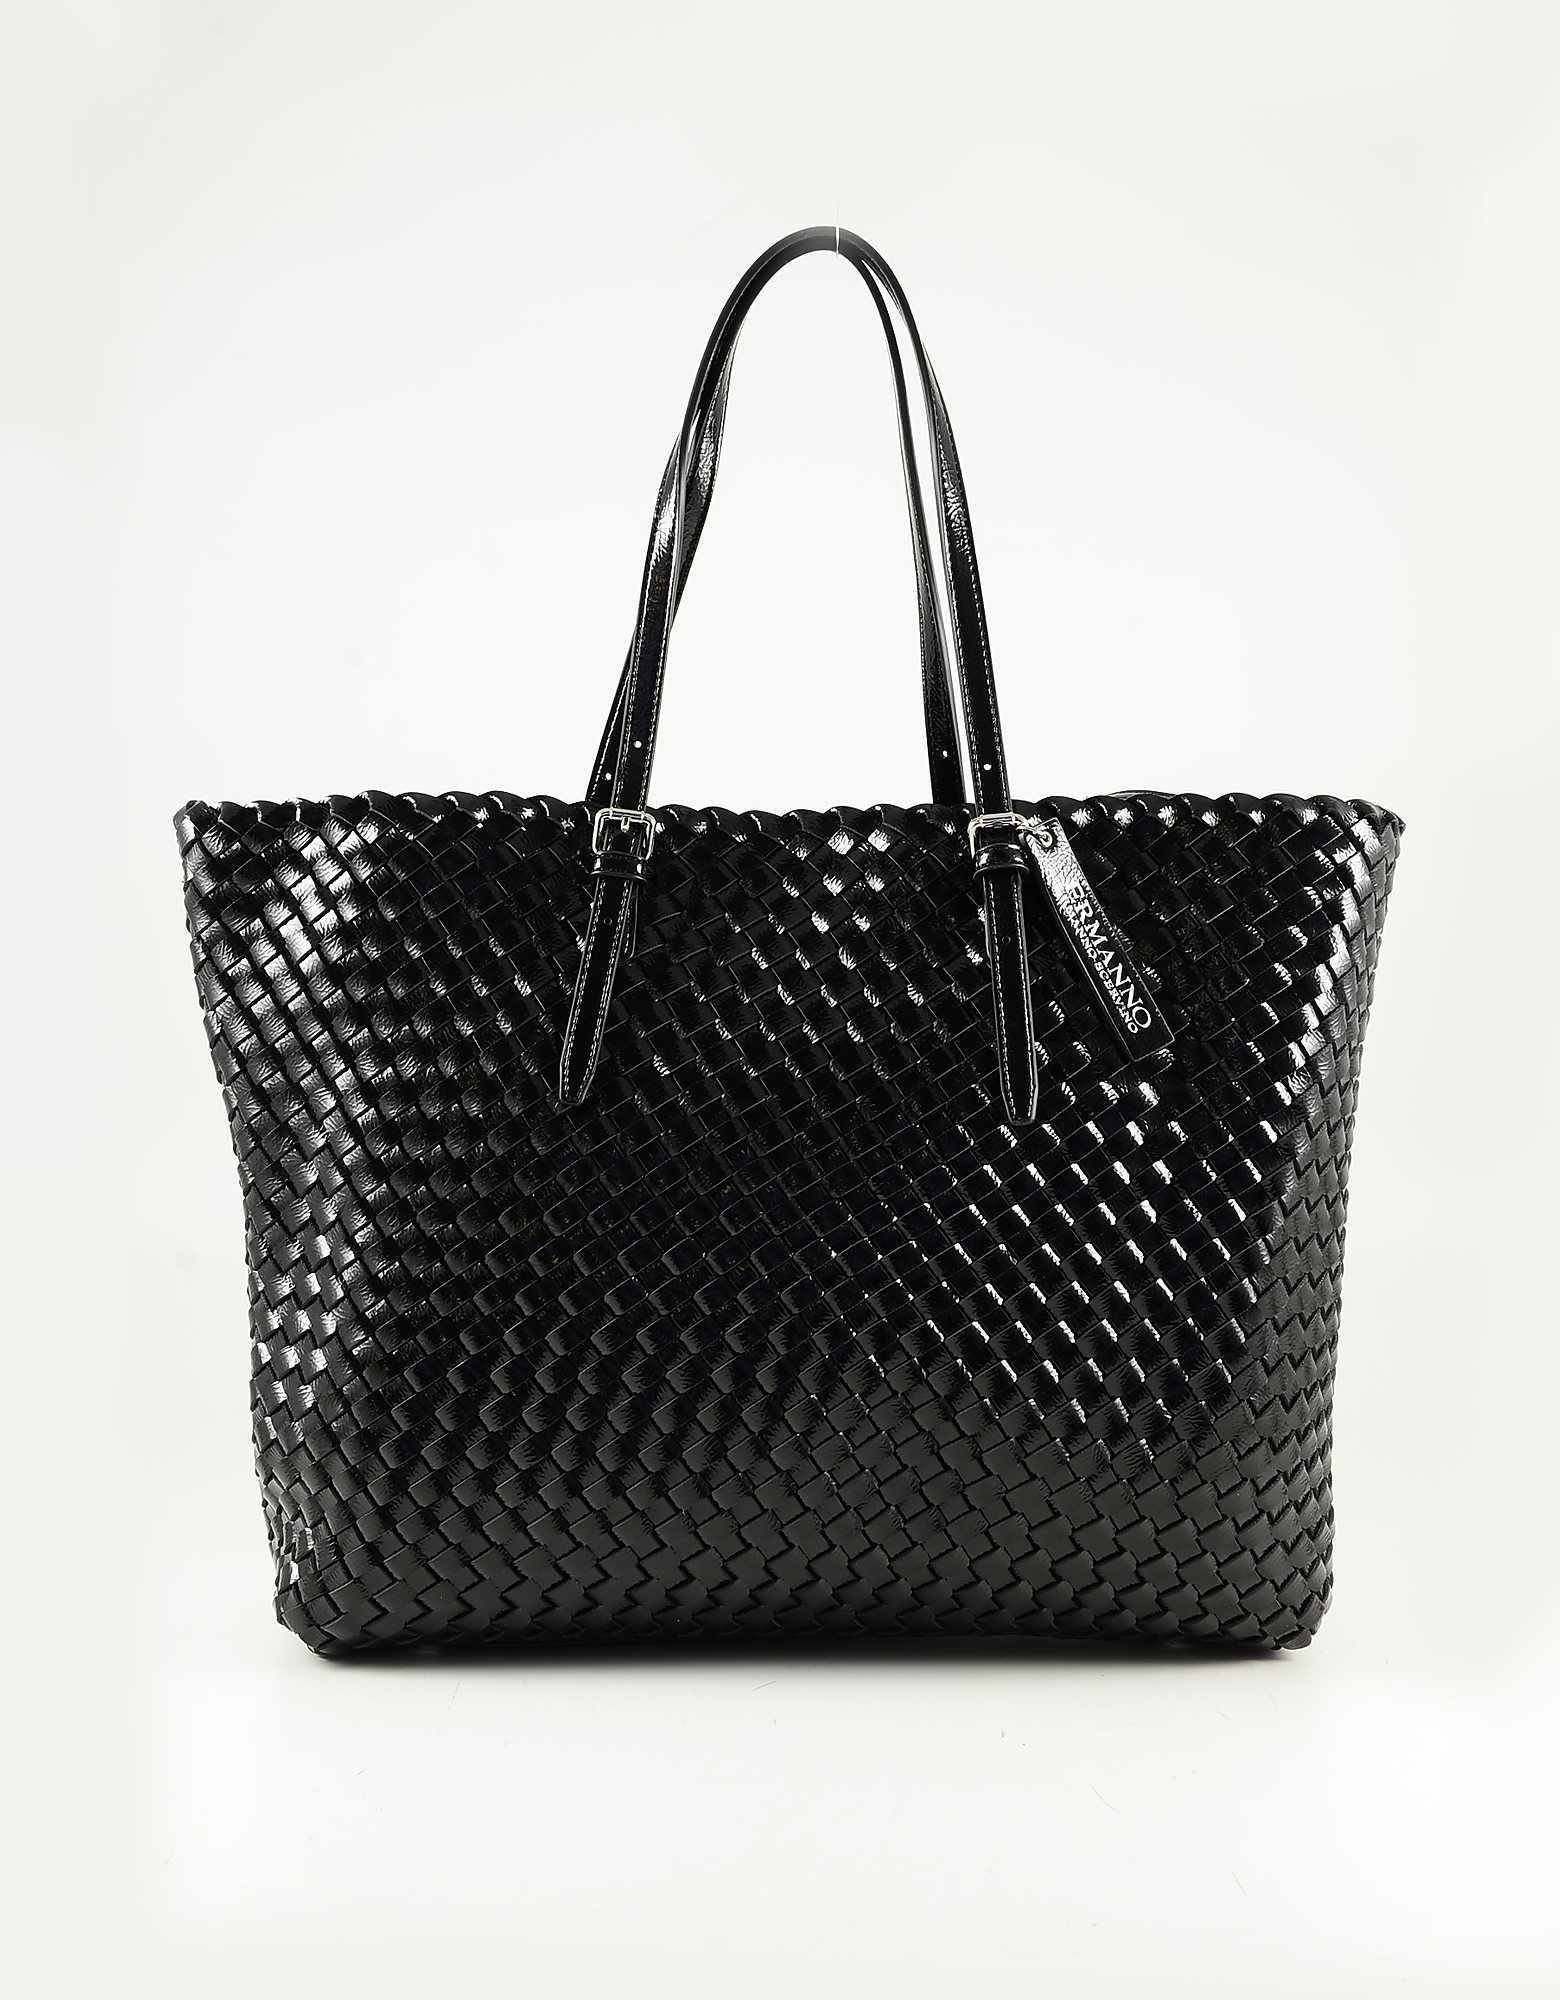 Ermanno Scervino Black Woven Eco-leather Tote Bag